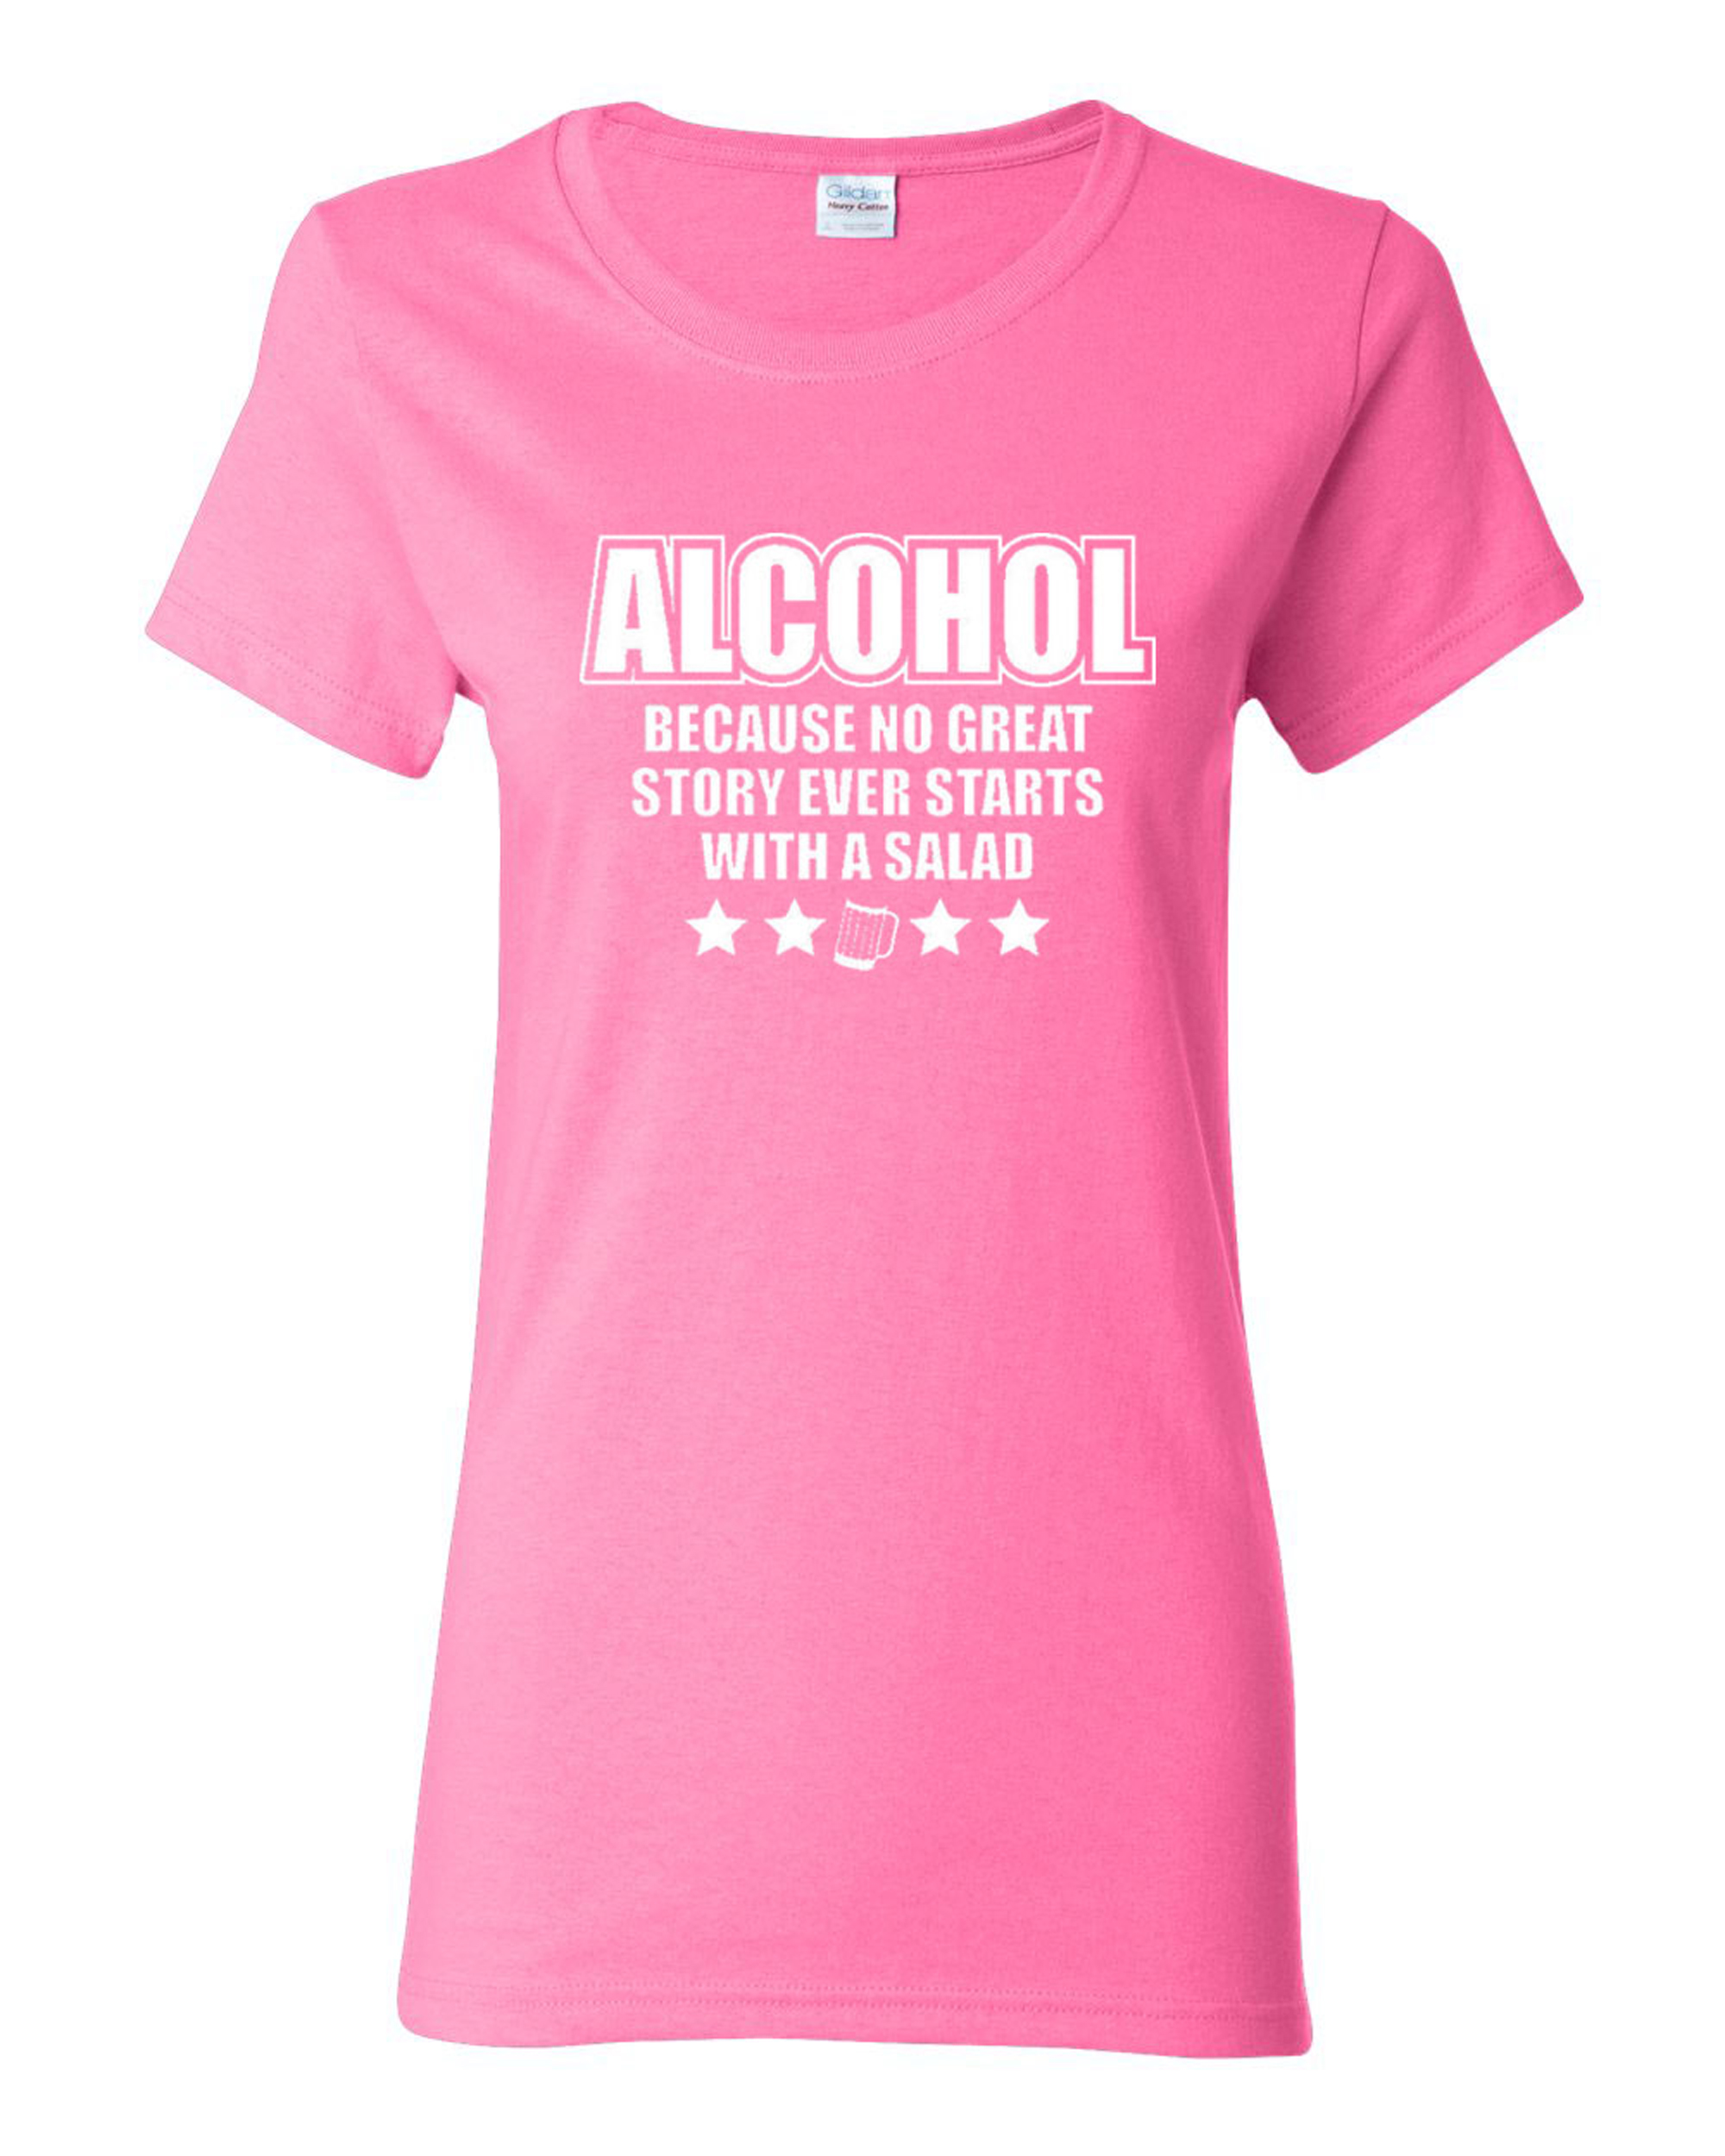 Ladies Alcohol Because No Great Story Ever Starts With A Salad T-Shirt Tee